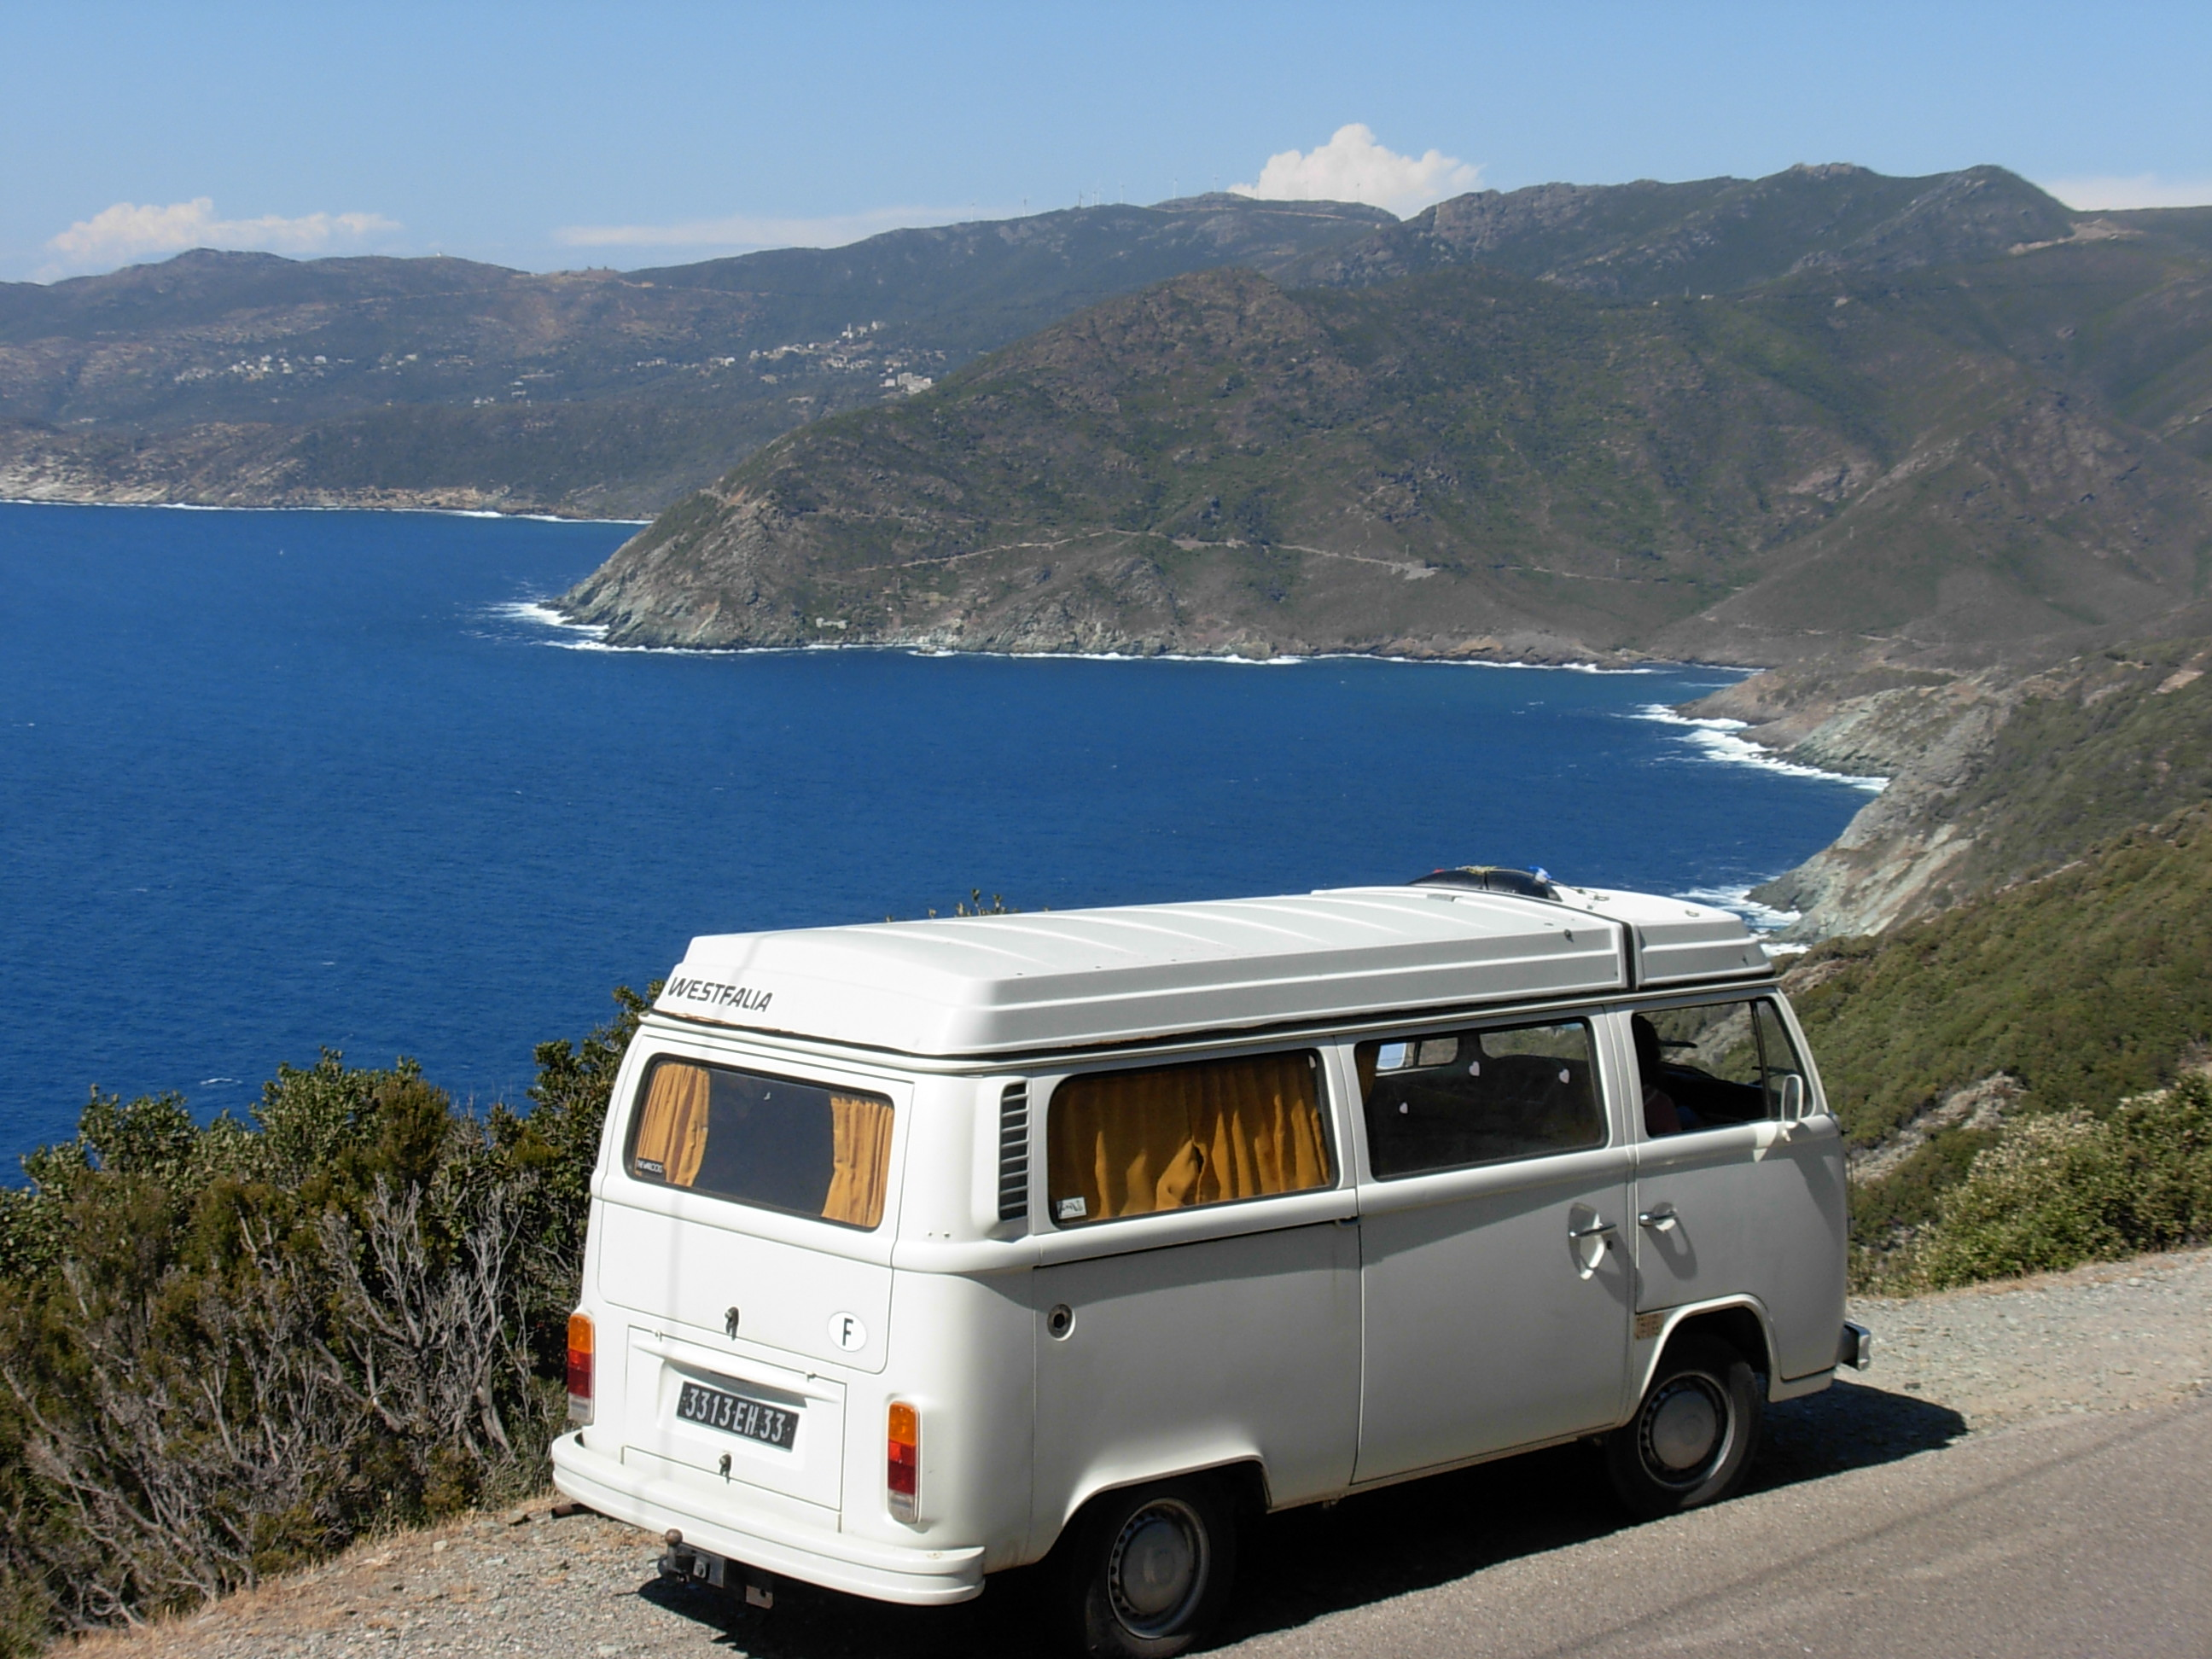 Westy VW sur la Cote Basque